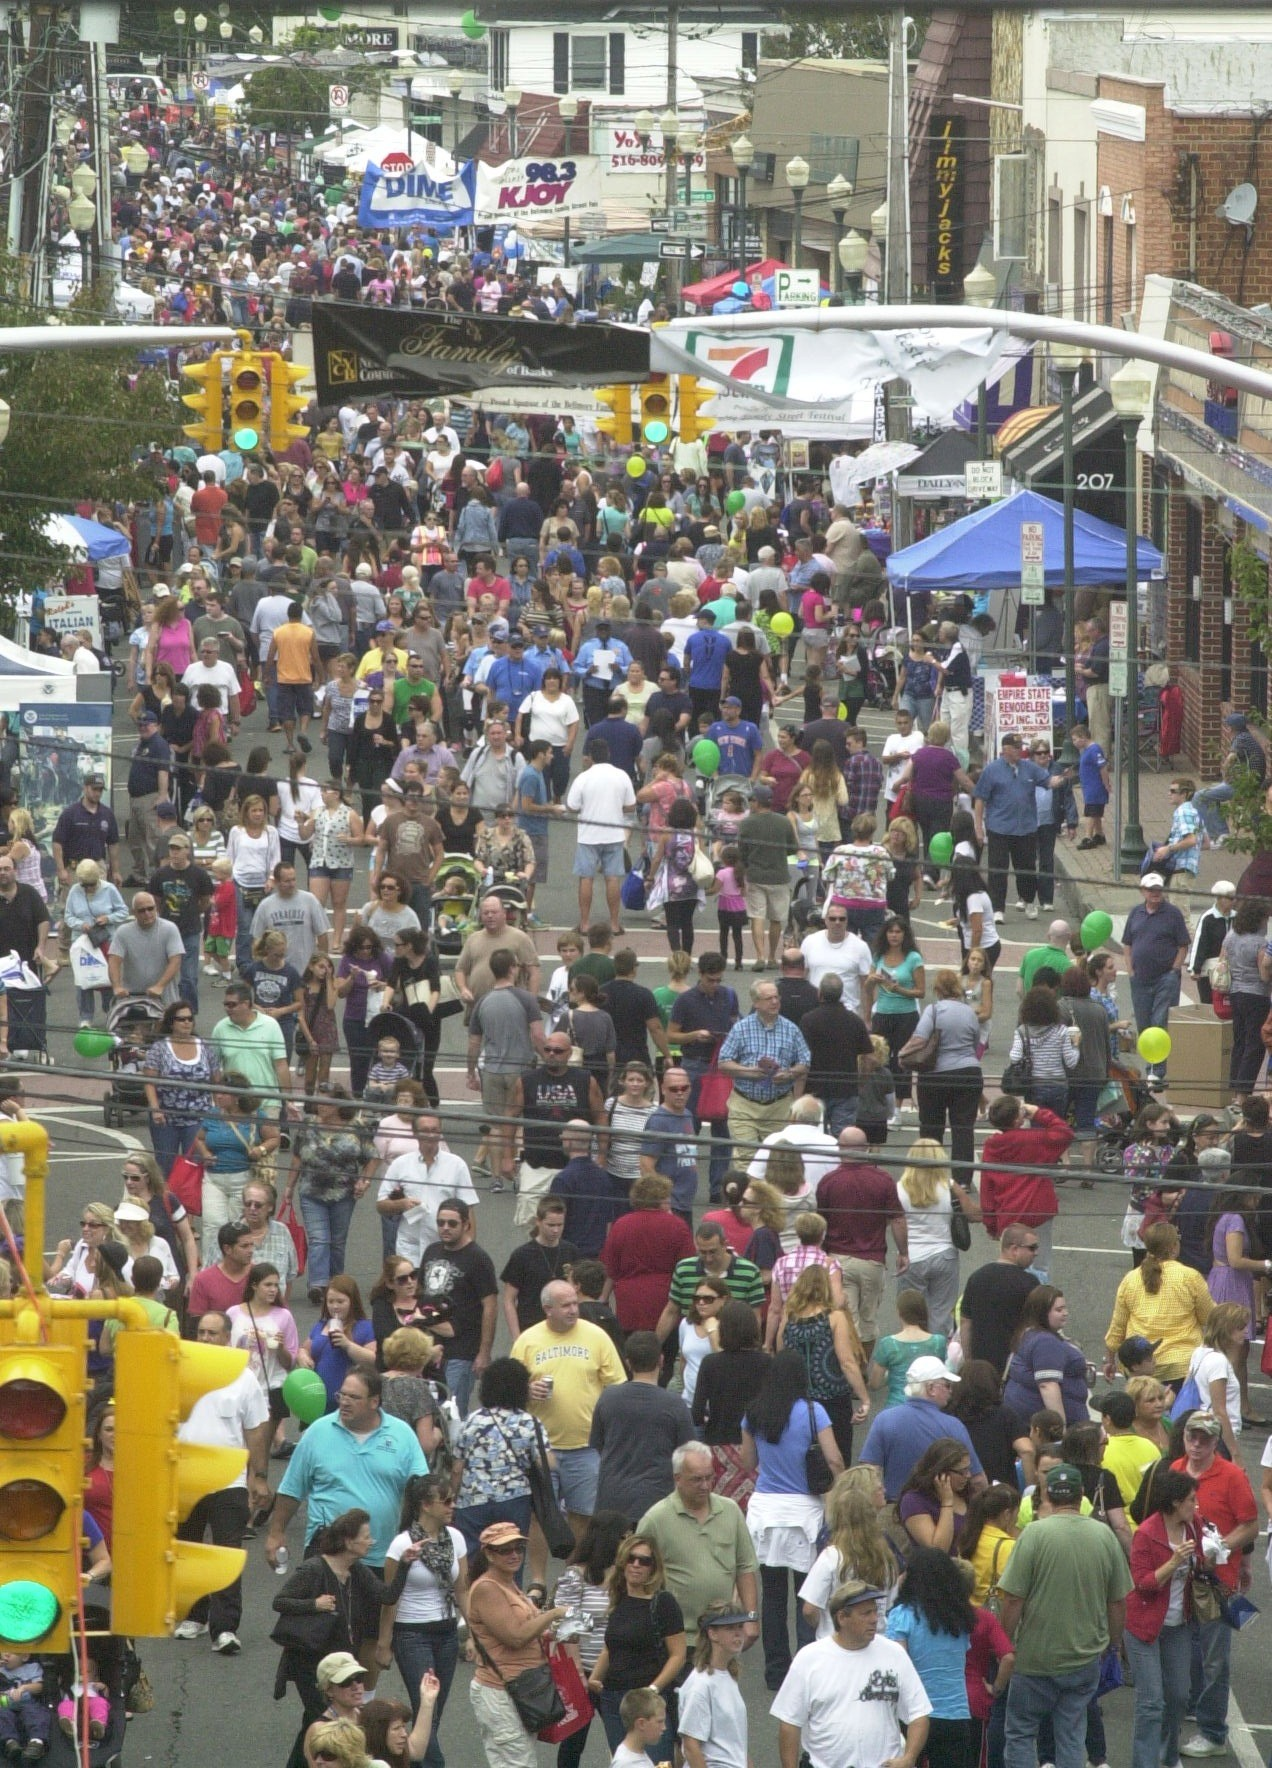 The 2012 Bellmore Family Street Festival attracted more than 100,000 fair-goers.